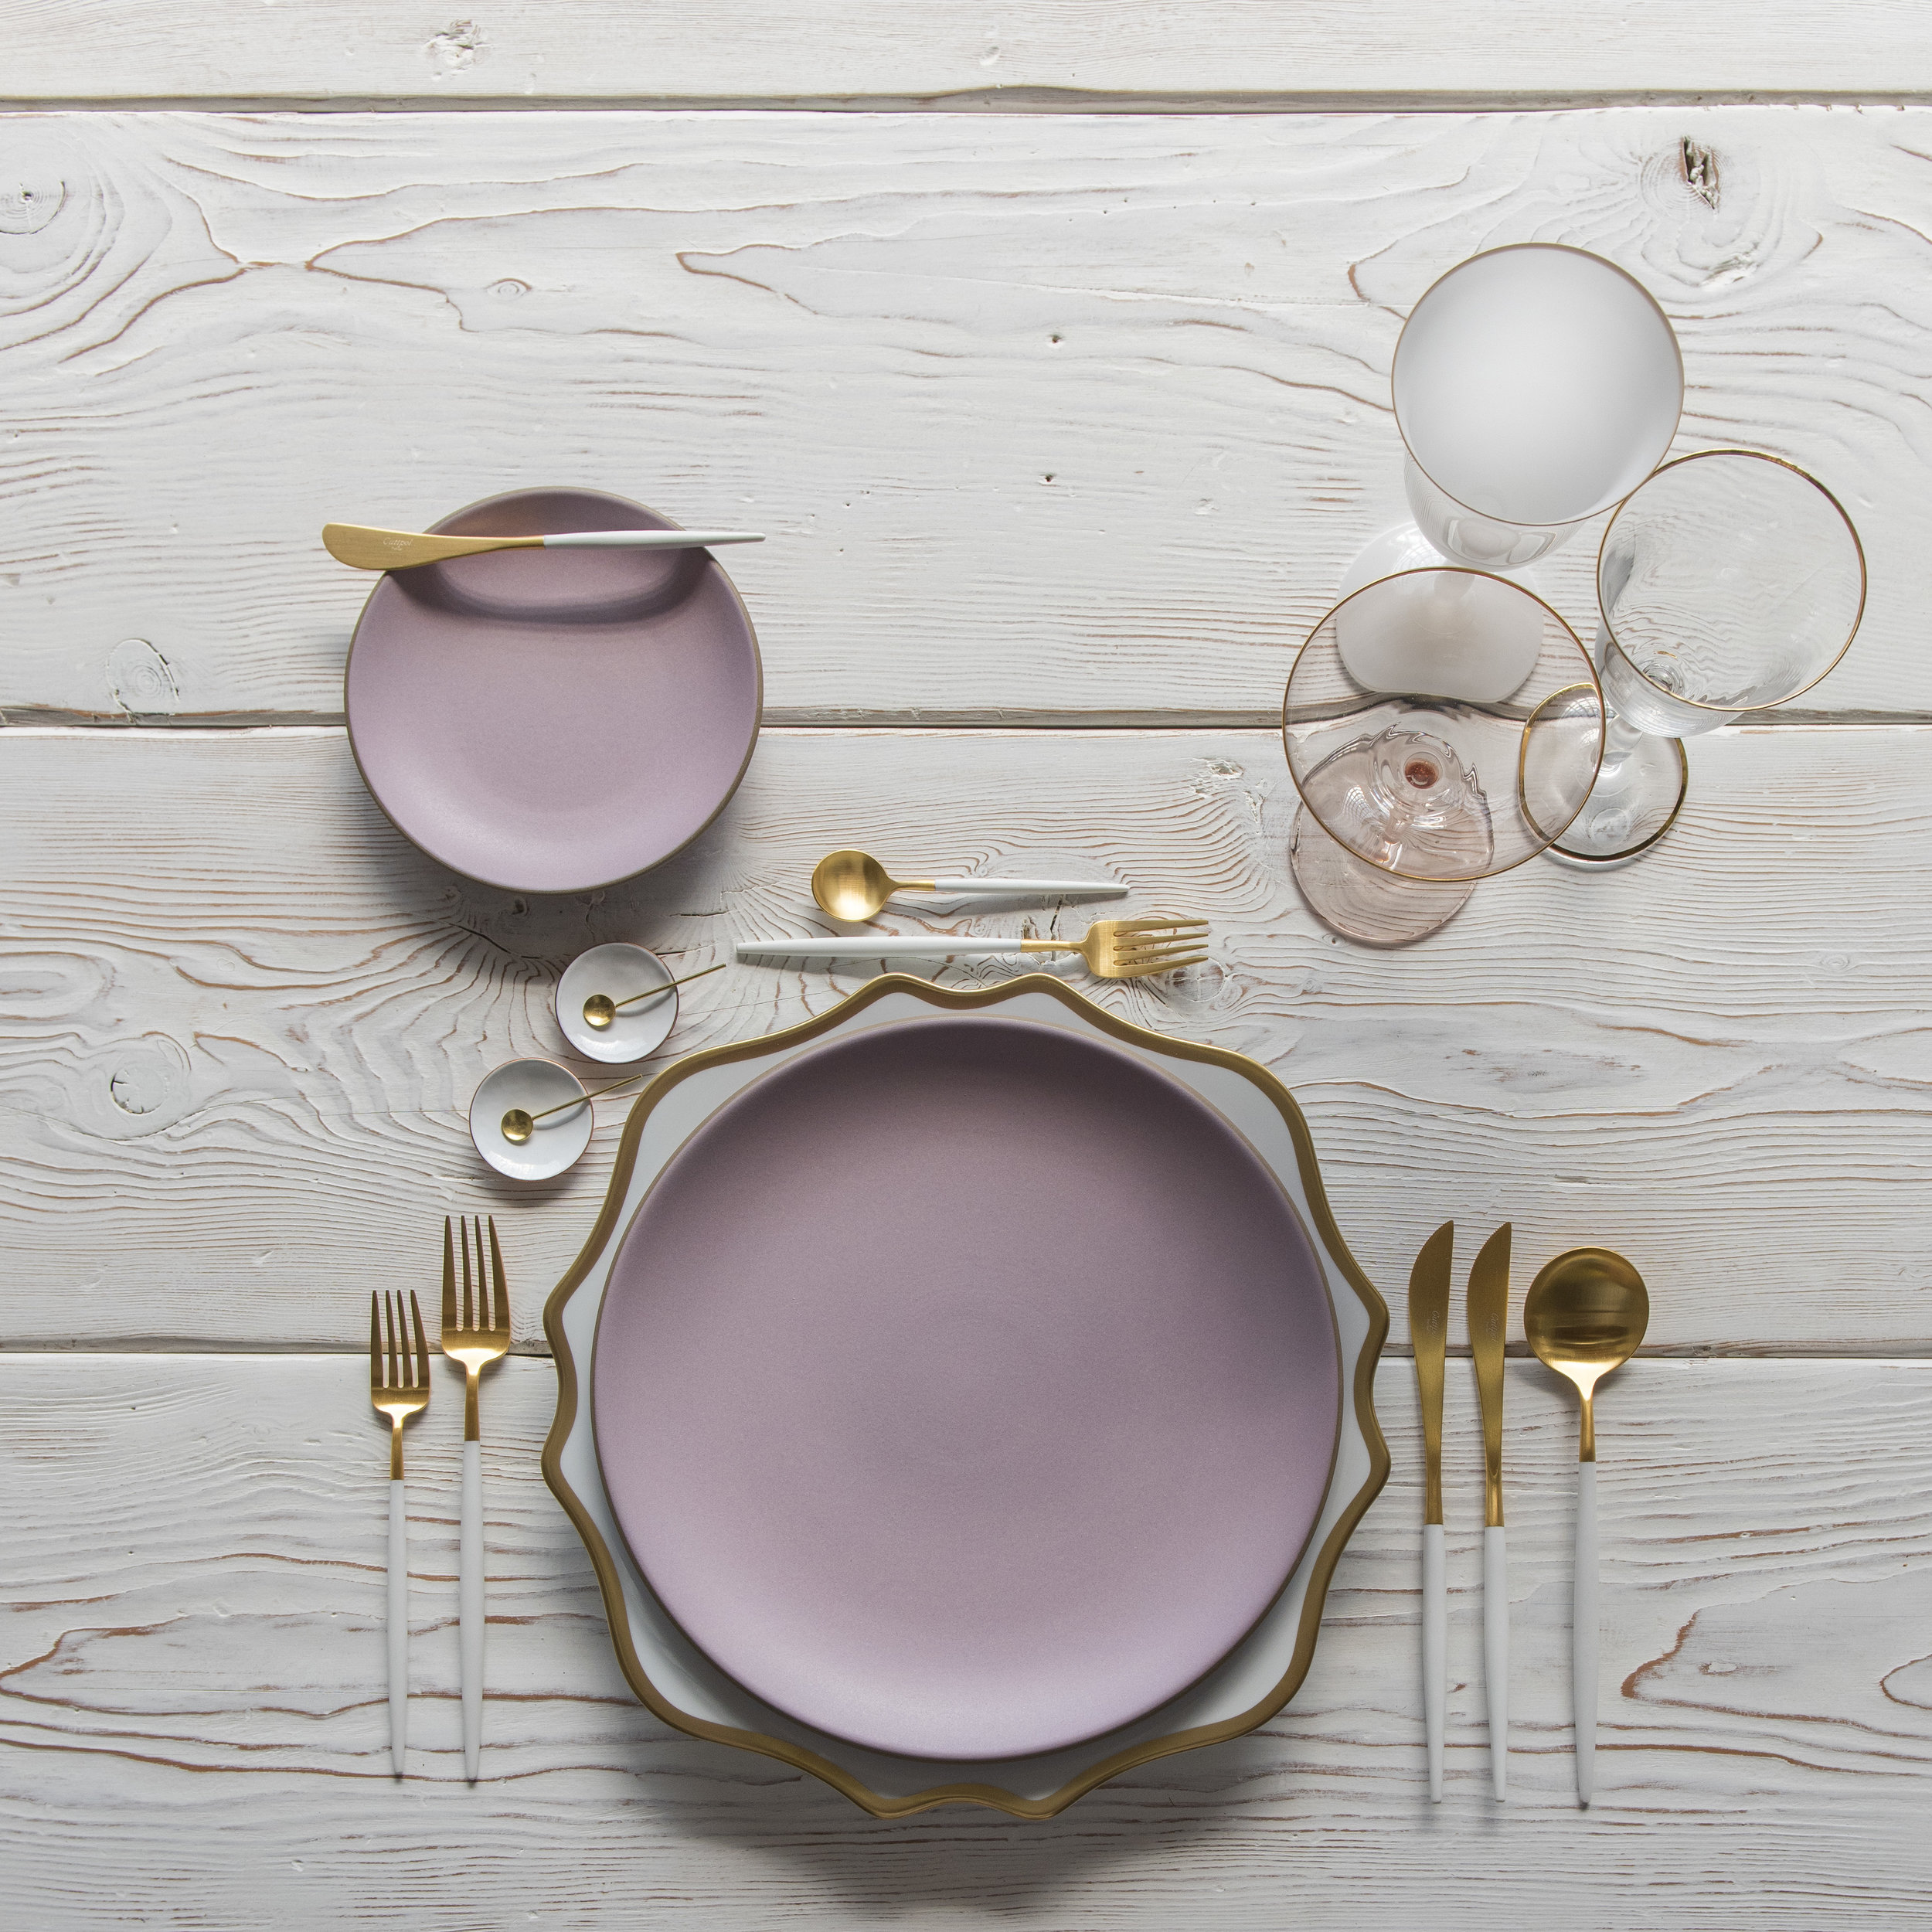 RENT: Anna Weatherley Chargers in White/Gold + Custom Heath Ceramics in Wildflower + Goa Flatware in Brushed 24k Gold/White + Chloe 24k Gold Rimmed Stemware + Chloe 24k Gold Rimmed Goblet in White + Bella 24k Gold Rimmed Stemware in Blush + White Enamel Salt Cellars + Tiny Gold Spoons   SHOP: Anna Weatherley Chargers in White/Gold + Goa Flatware in Brushed 24k Gold/White + Chloe 24k Gold Rimmed Stemware + Bella 24k Gold Rimmed Stemware in Blush + White Enamel Salt Cellars + Tiny Gold Spoons